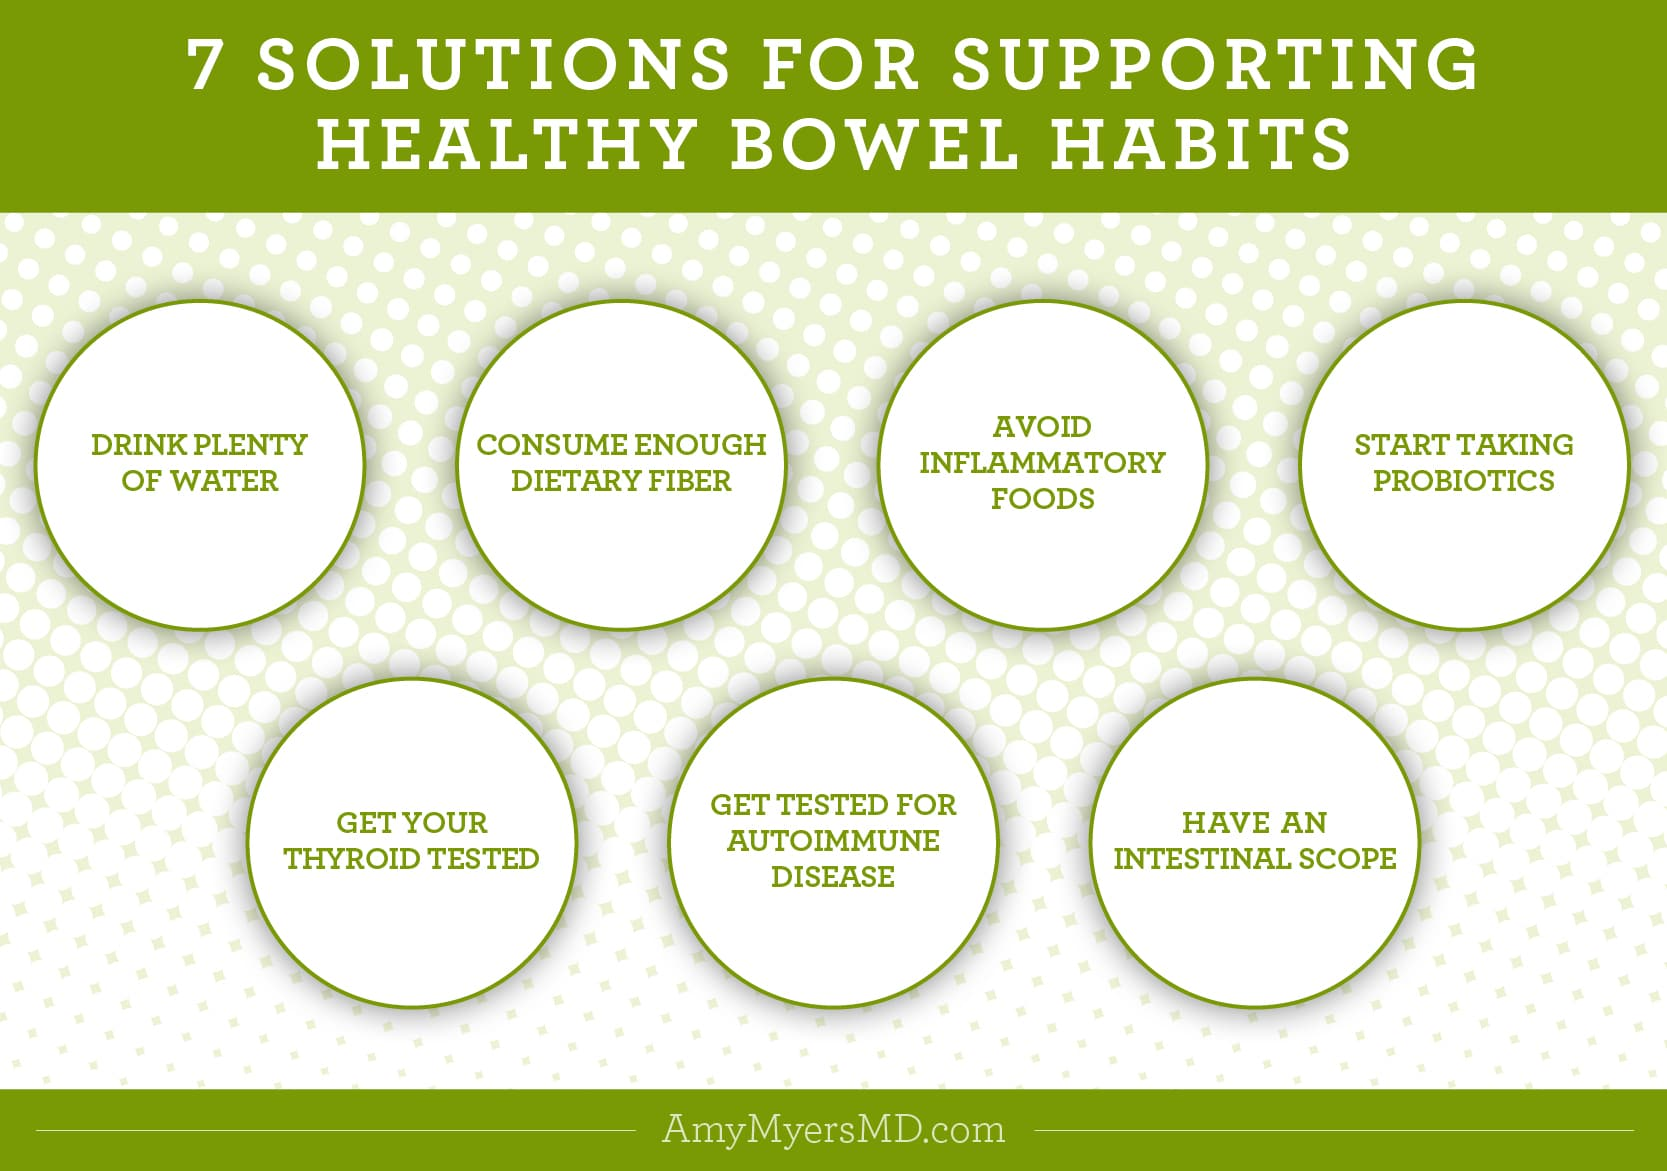 7 Solutions for Supporting Healthy Bowel Habits - Infographic - Amy Myers MD